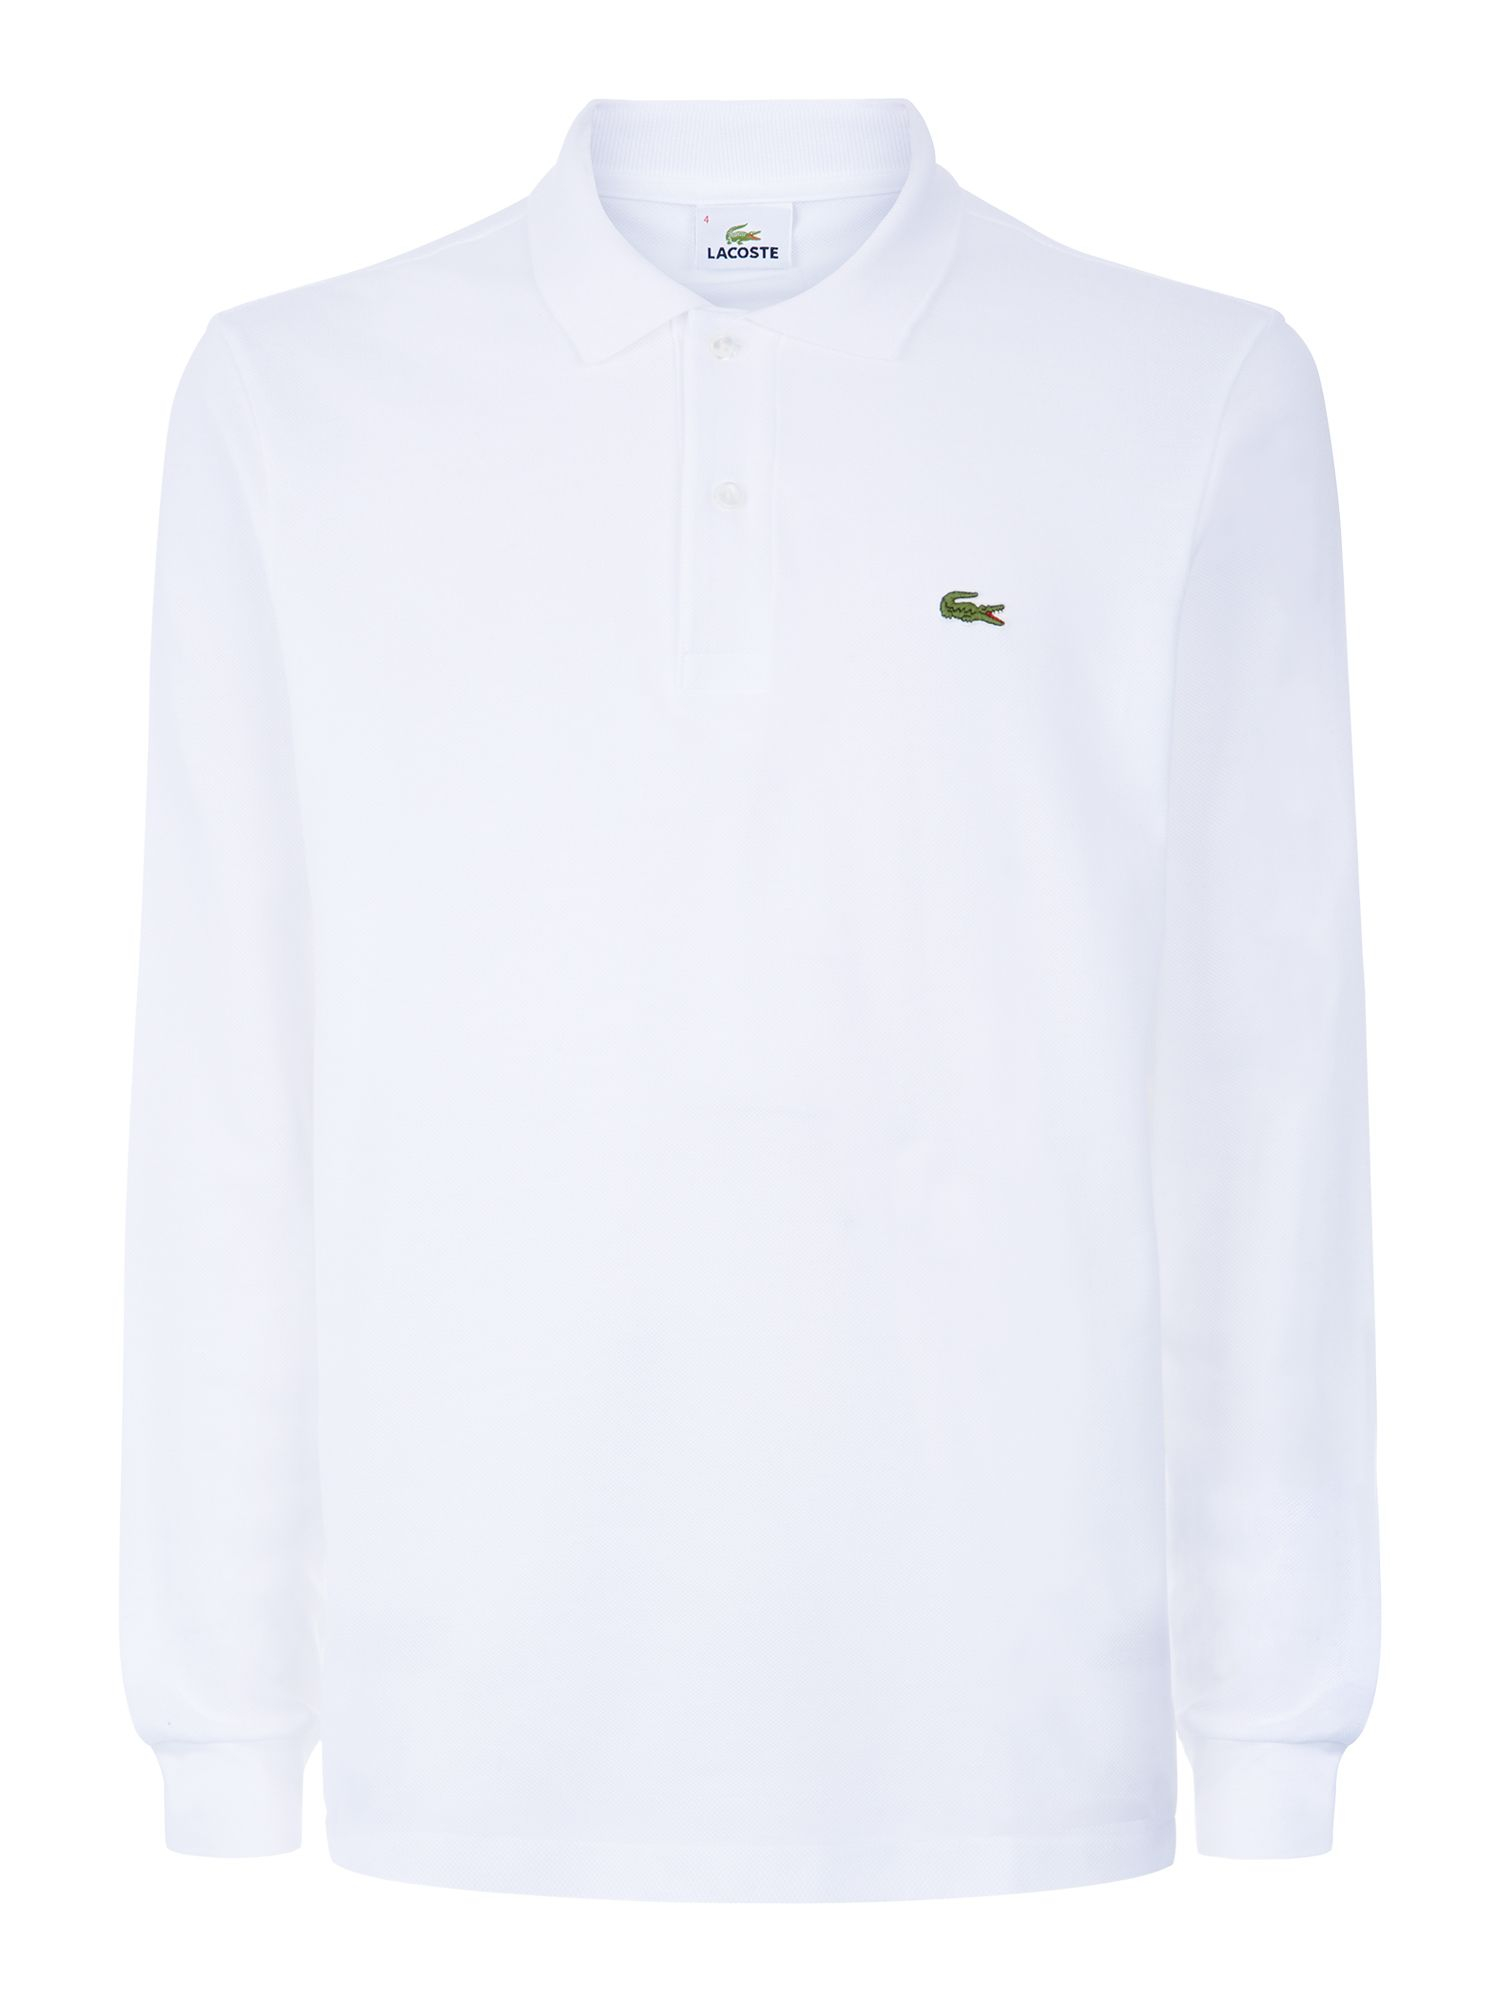 lacoste classic long sleeved polo shirt in white for men. Black Bedroom Furniture Sets. Home Design Ideas